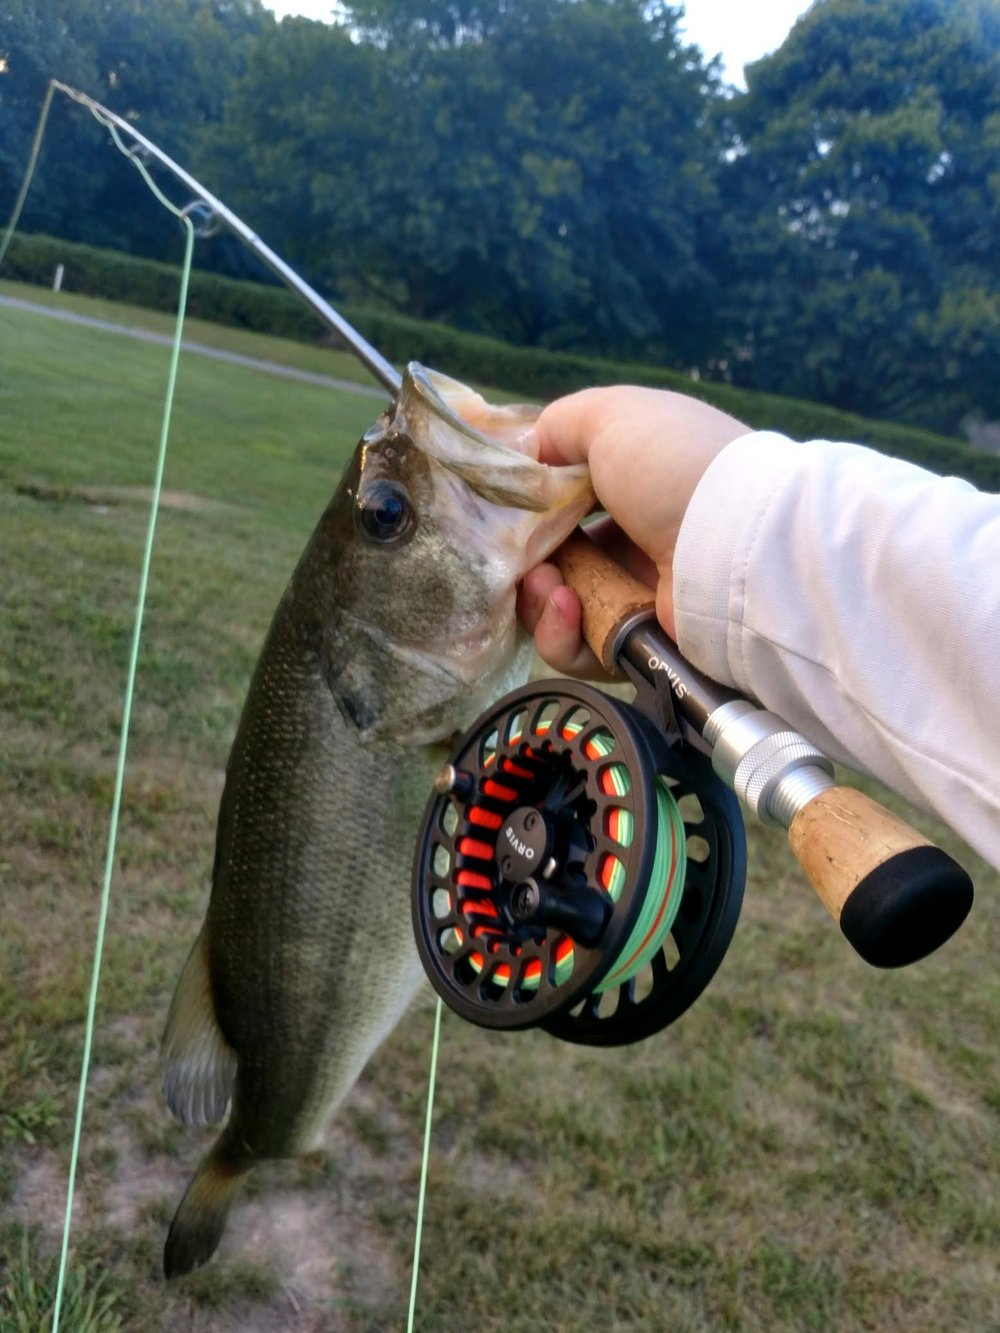 Freshwater anglers are getting in on the fun, too, by tossing lures like rubber frogs and lipless crank baits. Either early or late in the day on ponds have been the best times to catch largemouth bass, which is where and when Zach Goss of Chestertown scored this bucketmouth on his fly rod earlier this week. (Photo courtesy of Zach Goss.)